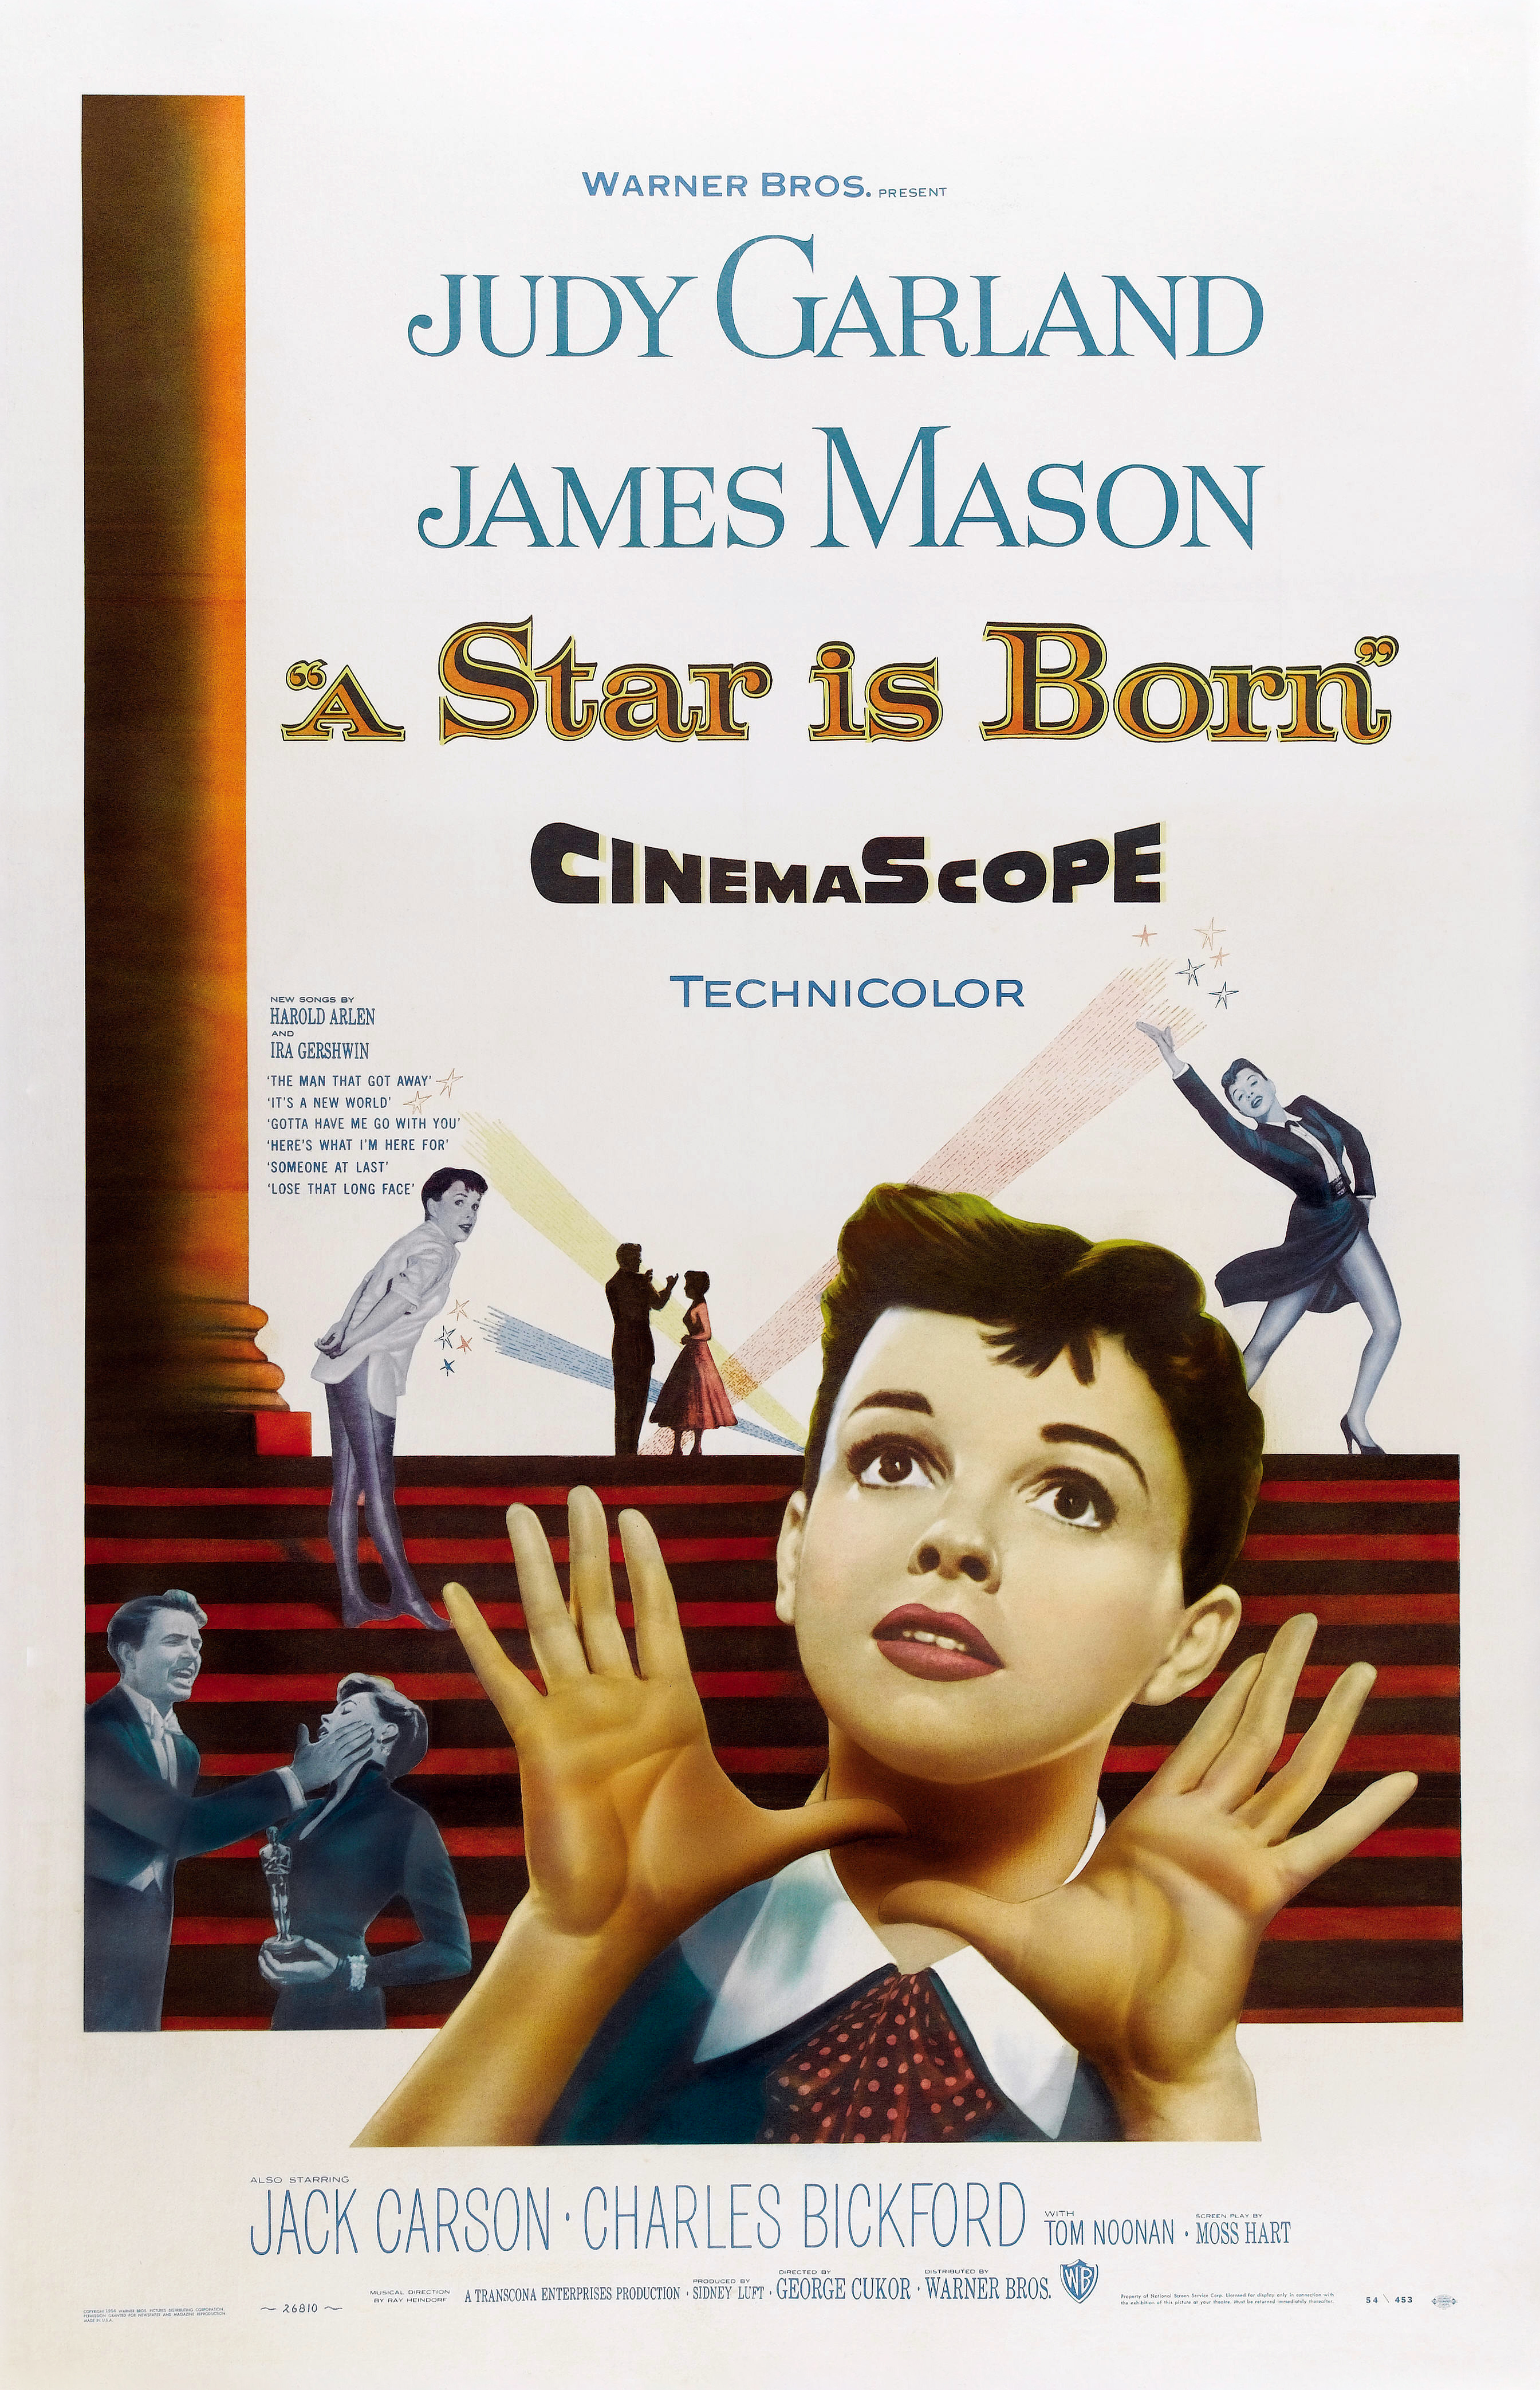 poster_a_star_is_born_1954_01.jpg